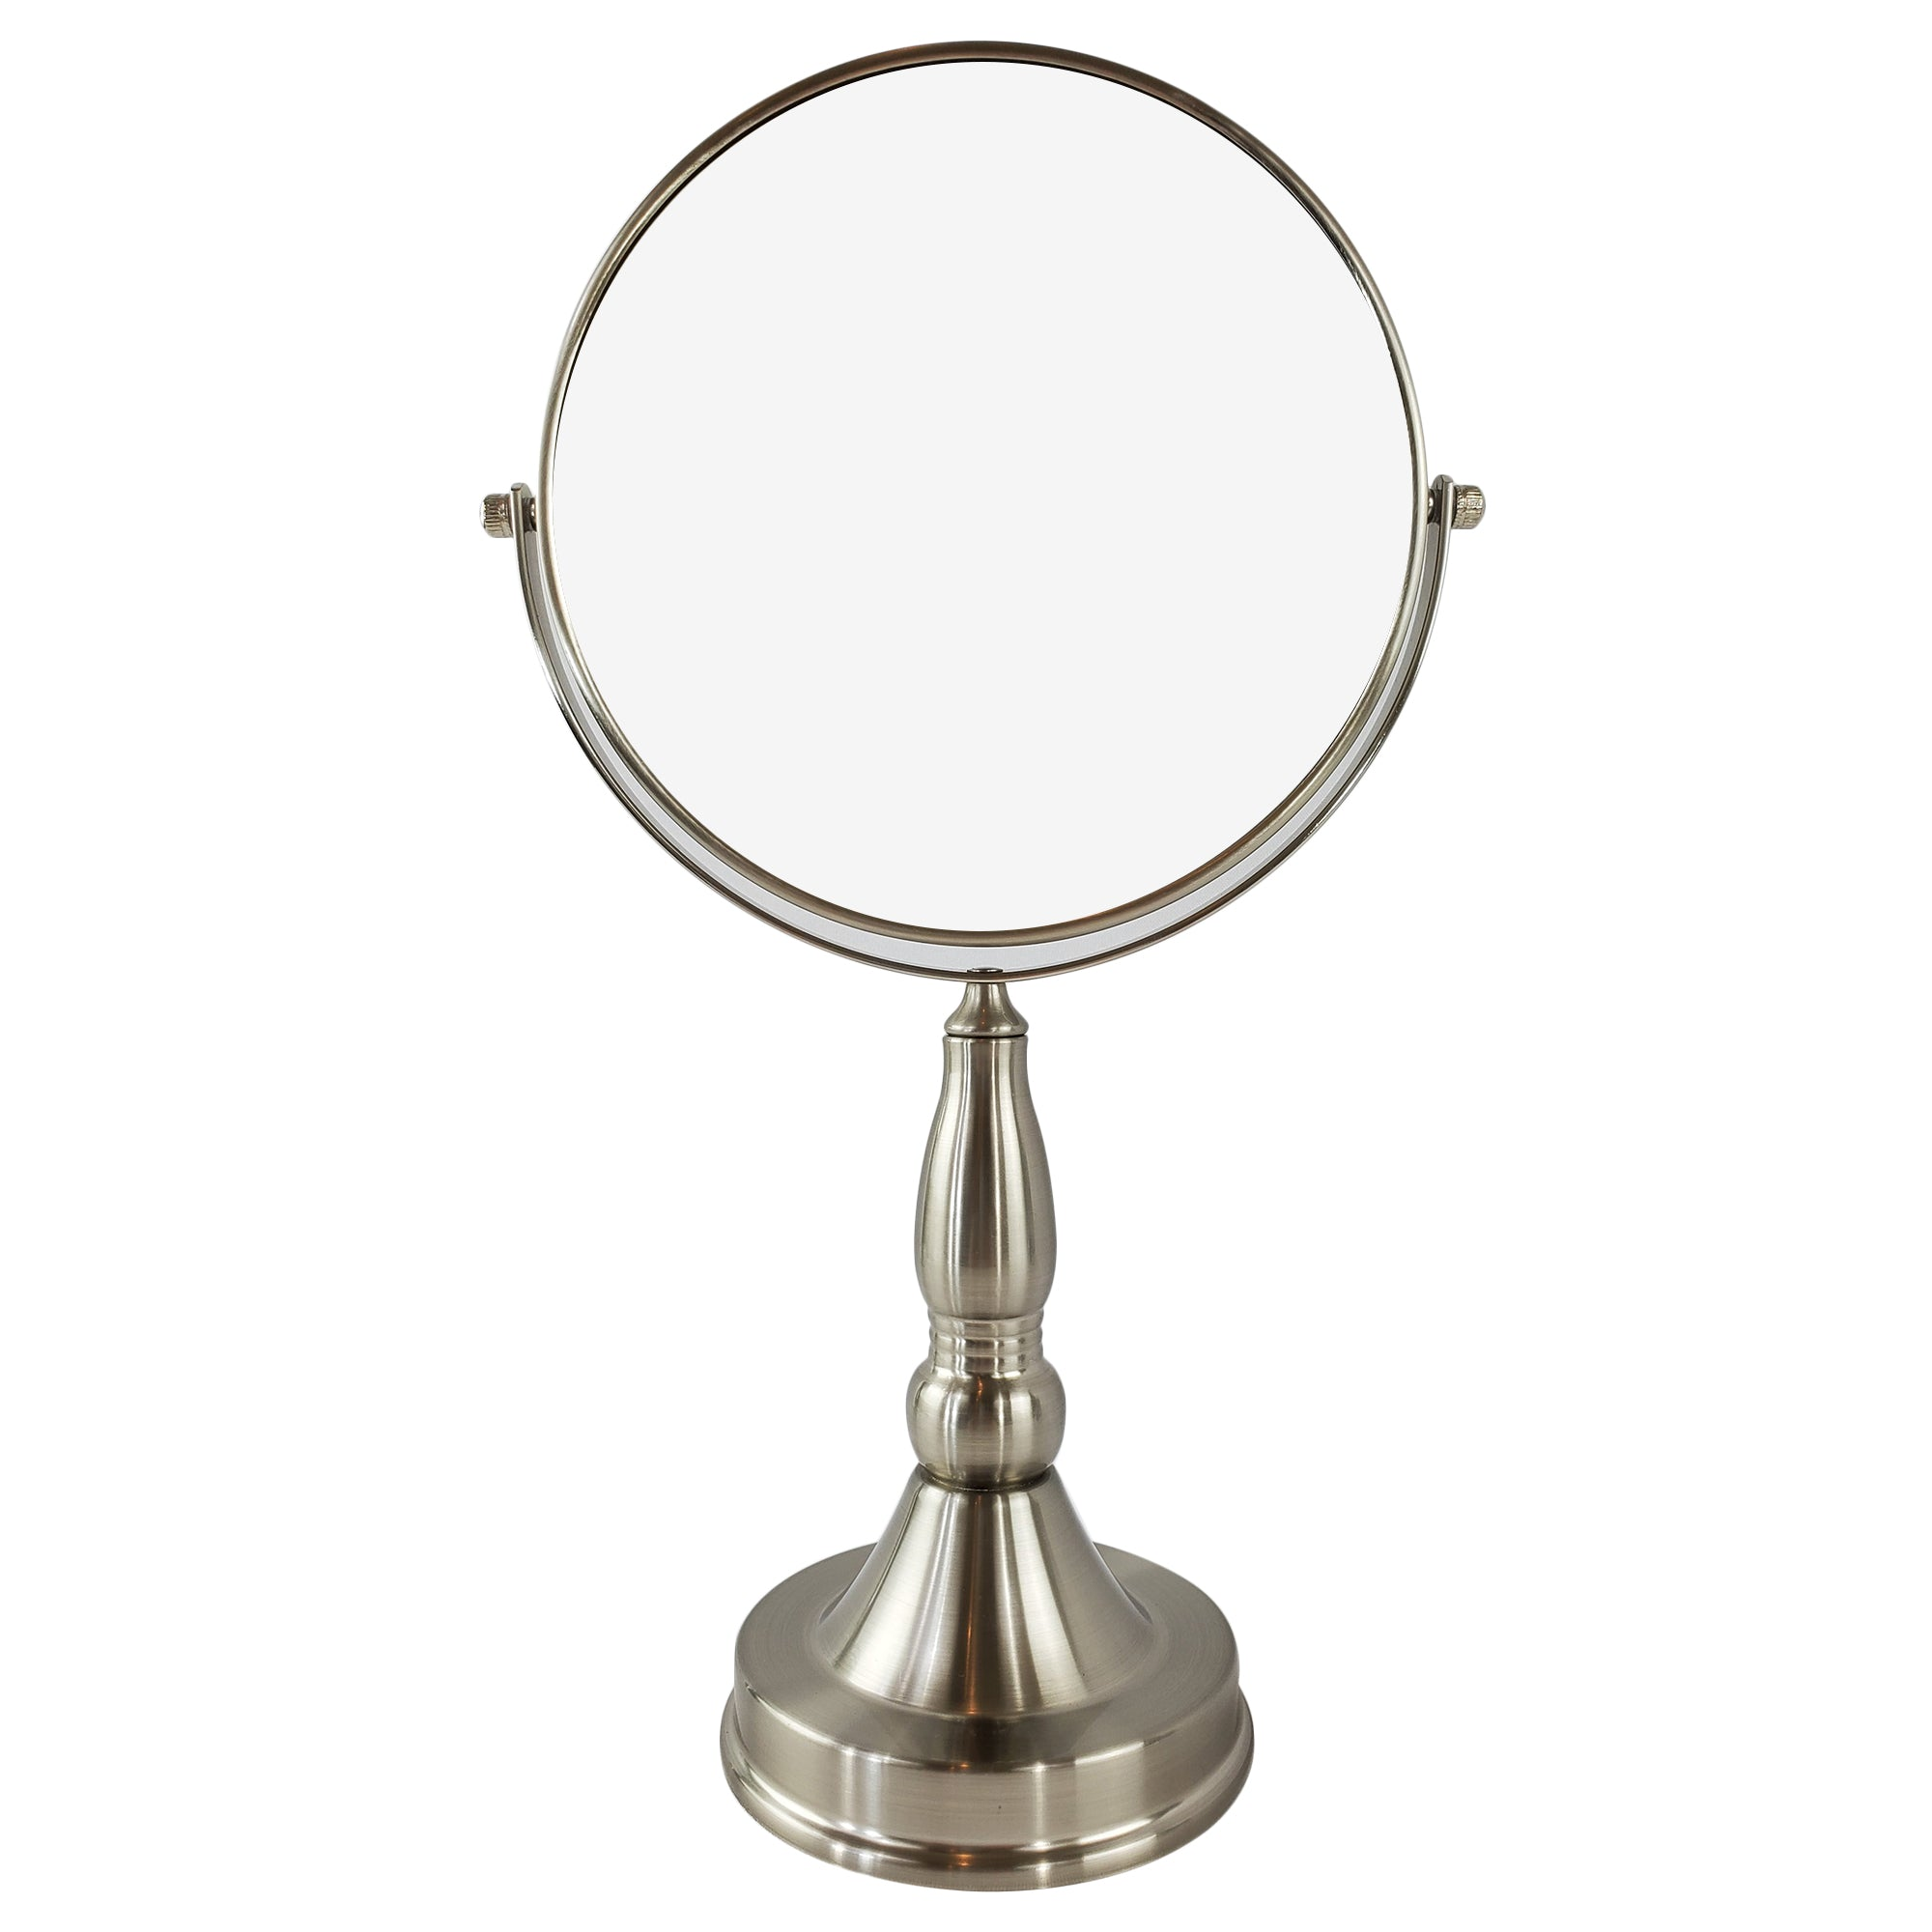 Magnifying Make Up Vanity Mirror With Satin Nickel Plated Finish